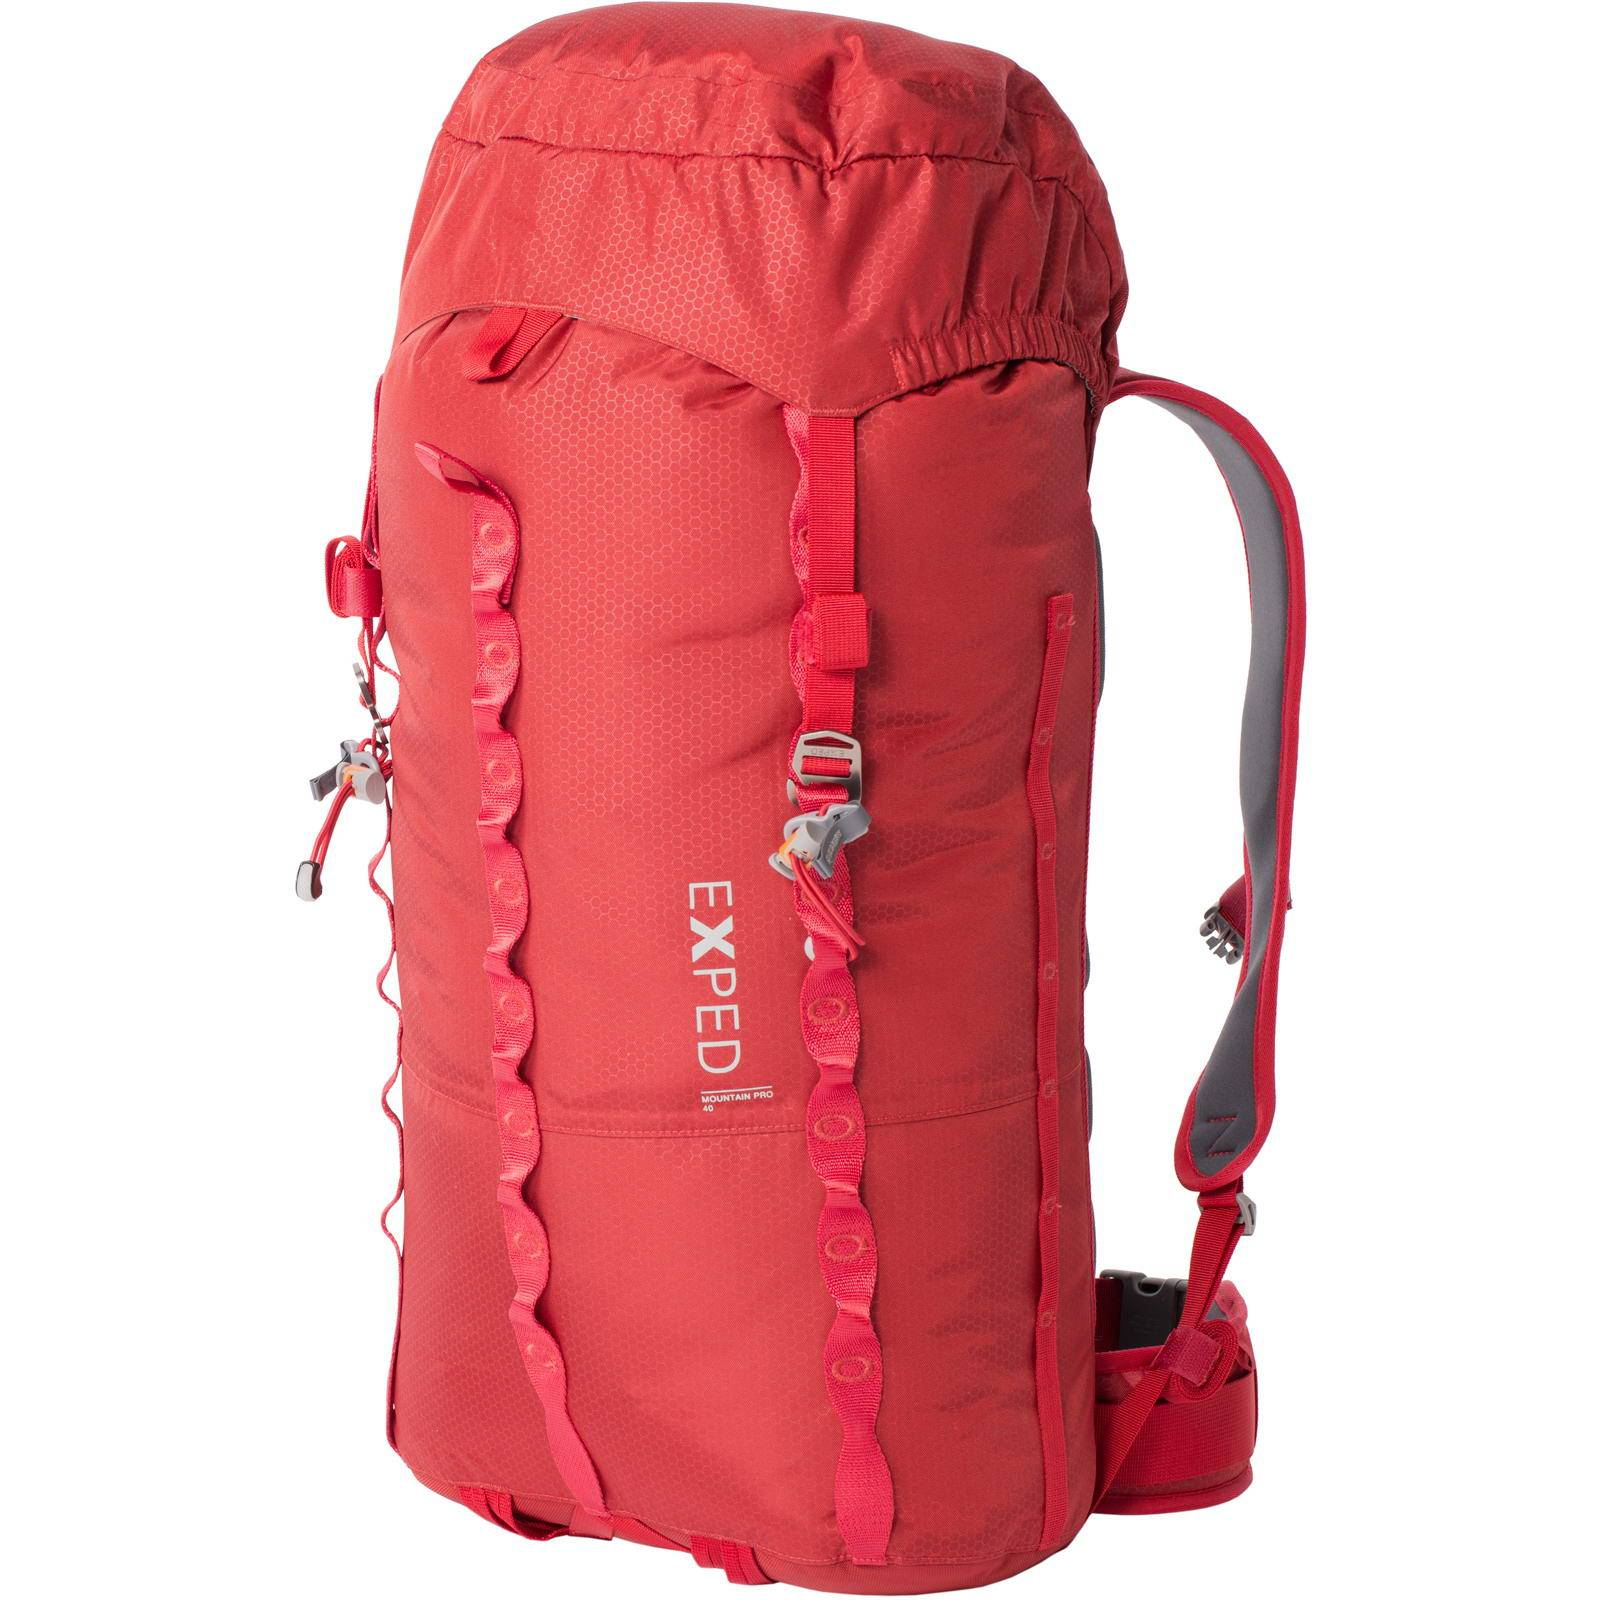 EXPED Mountain Pro 40 - Rucksack ruby red M